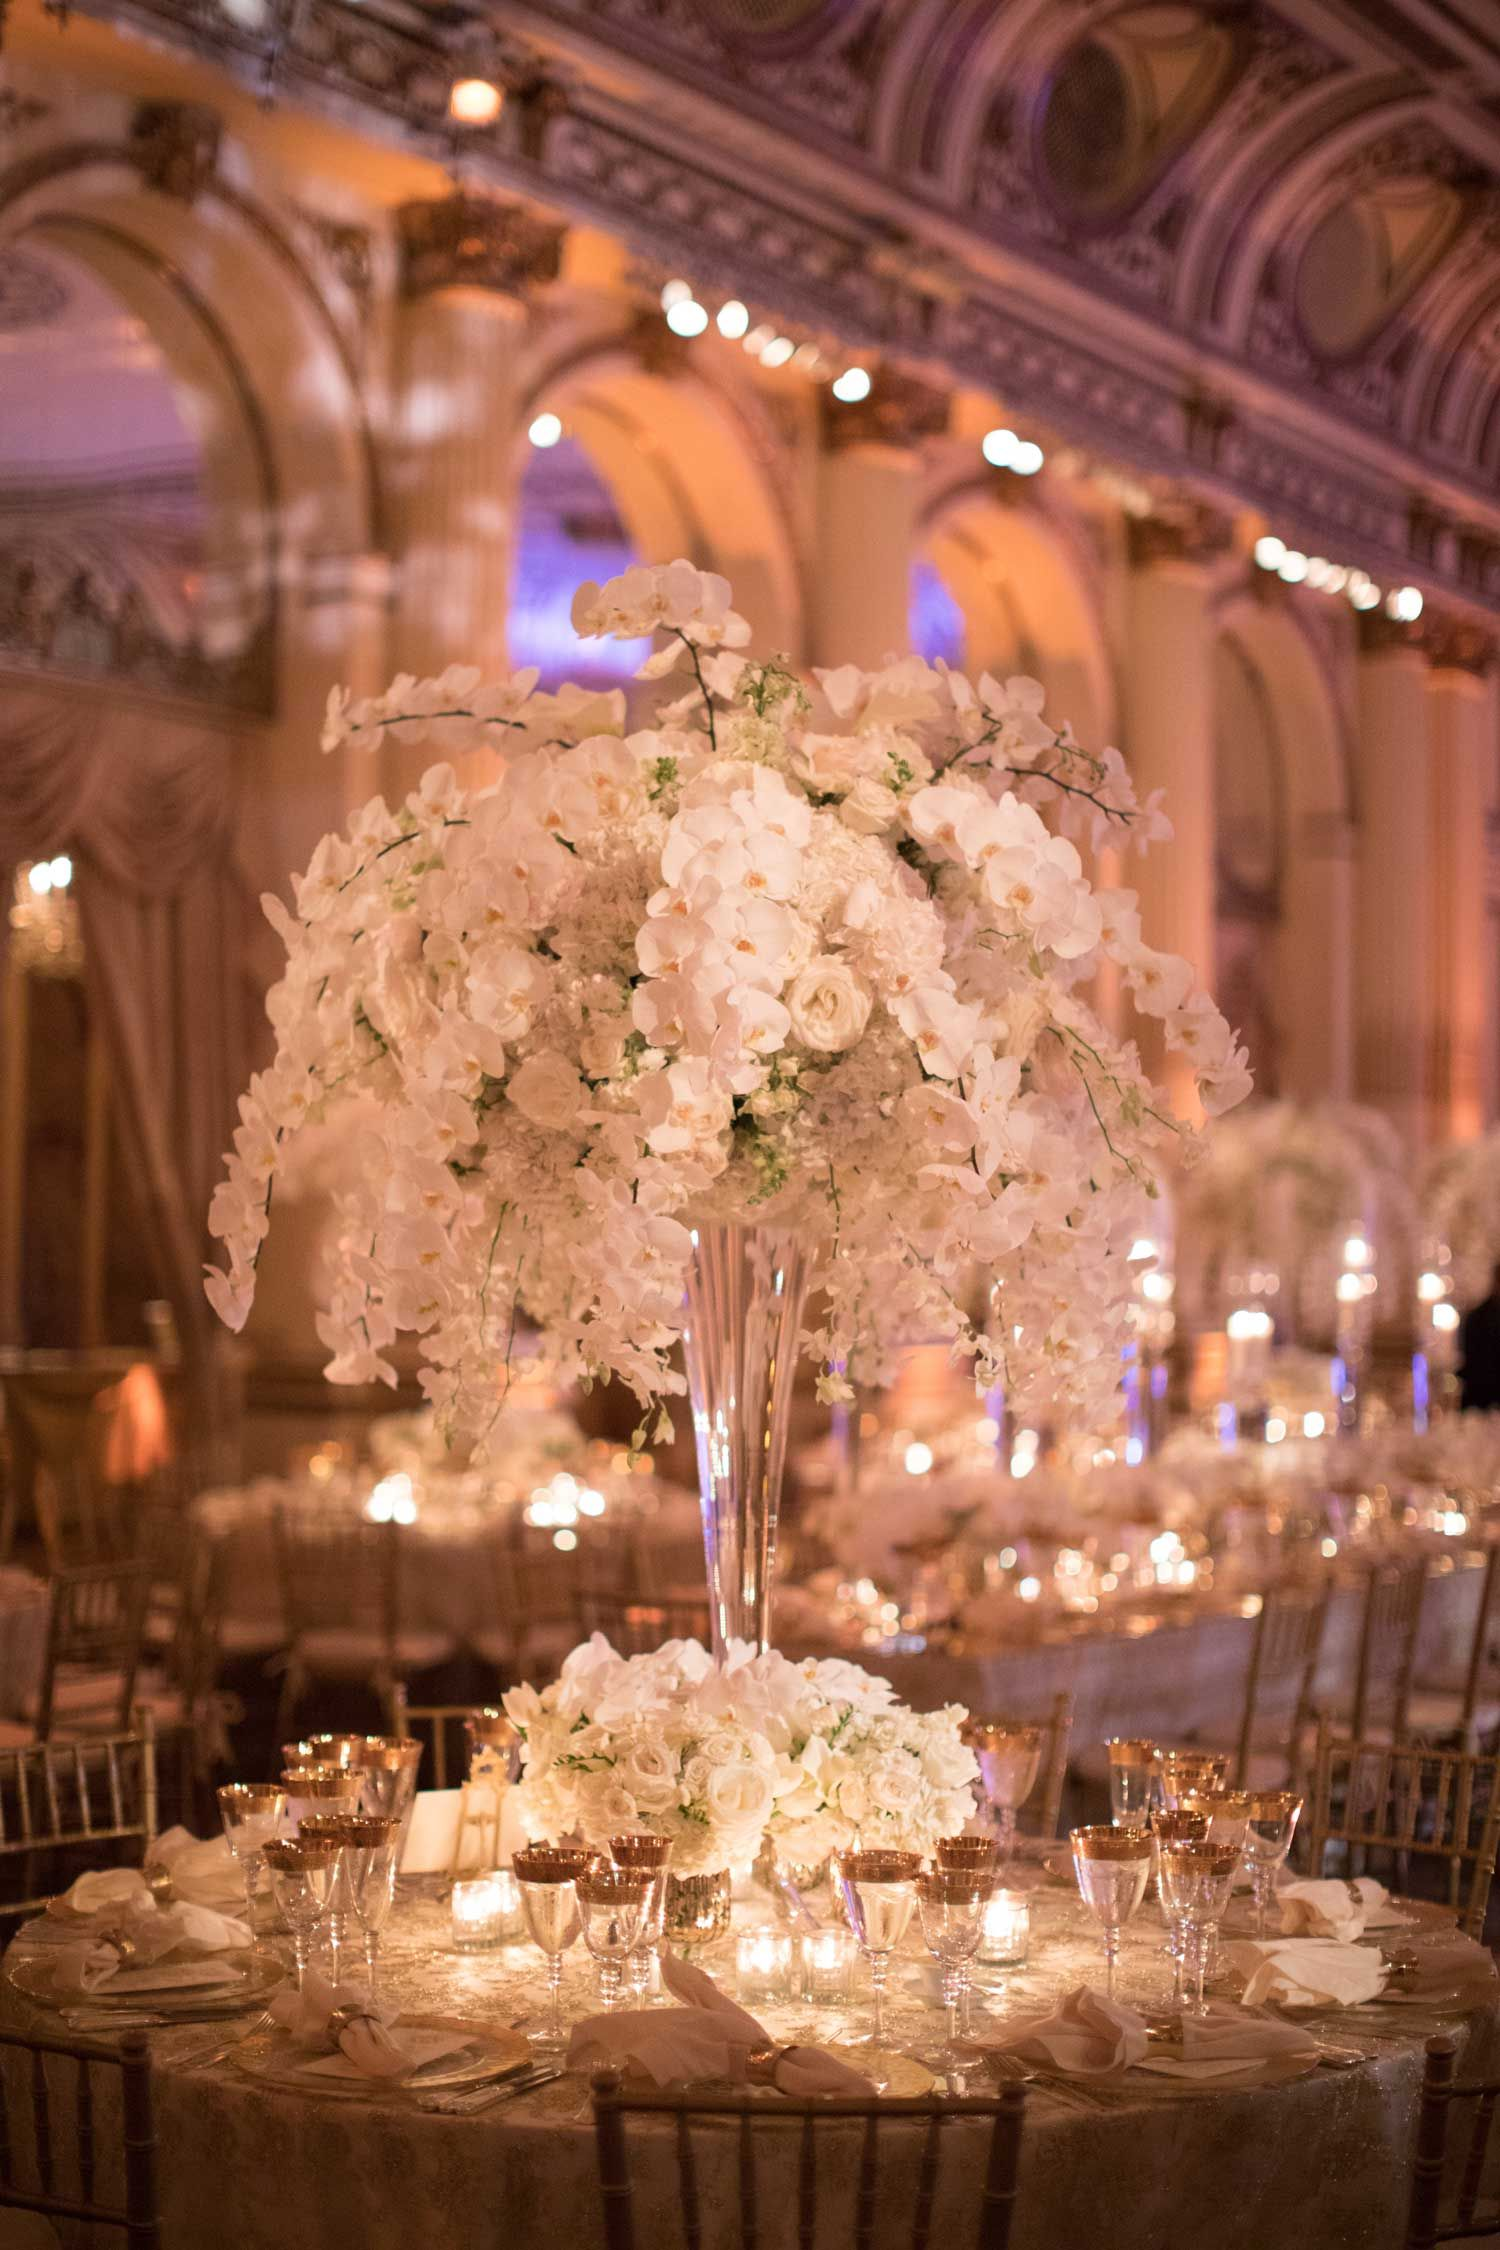 Opulent Luxury Wedding With Timeless Color Palette In New York City Inside Weddings Orchid Centerpieces Wedding Wedding Floral Centerpieces Wedding Inside